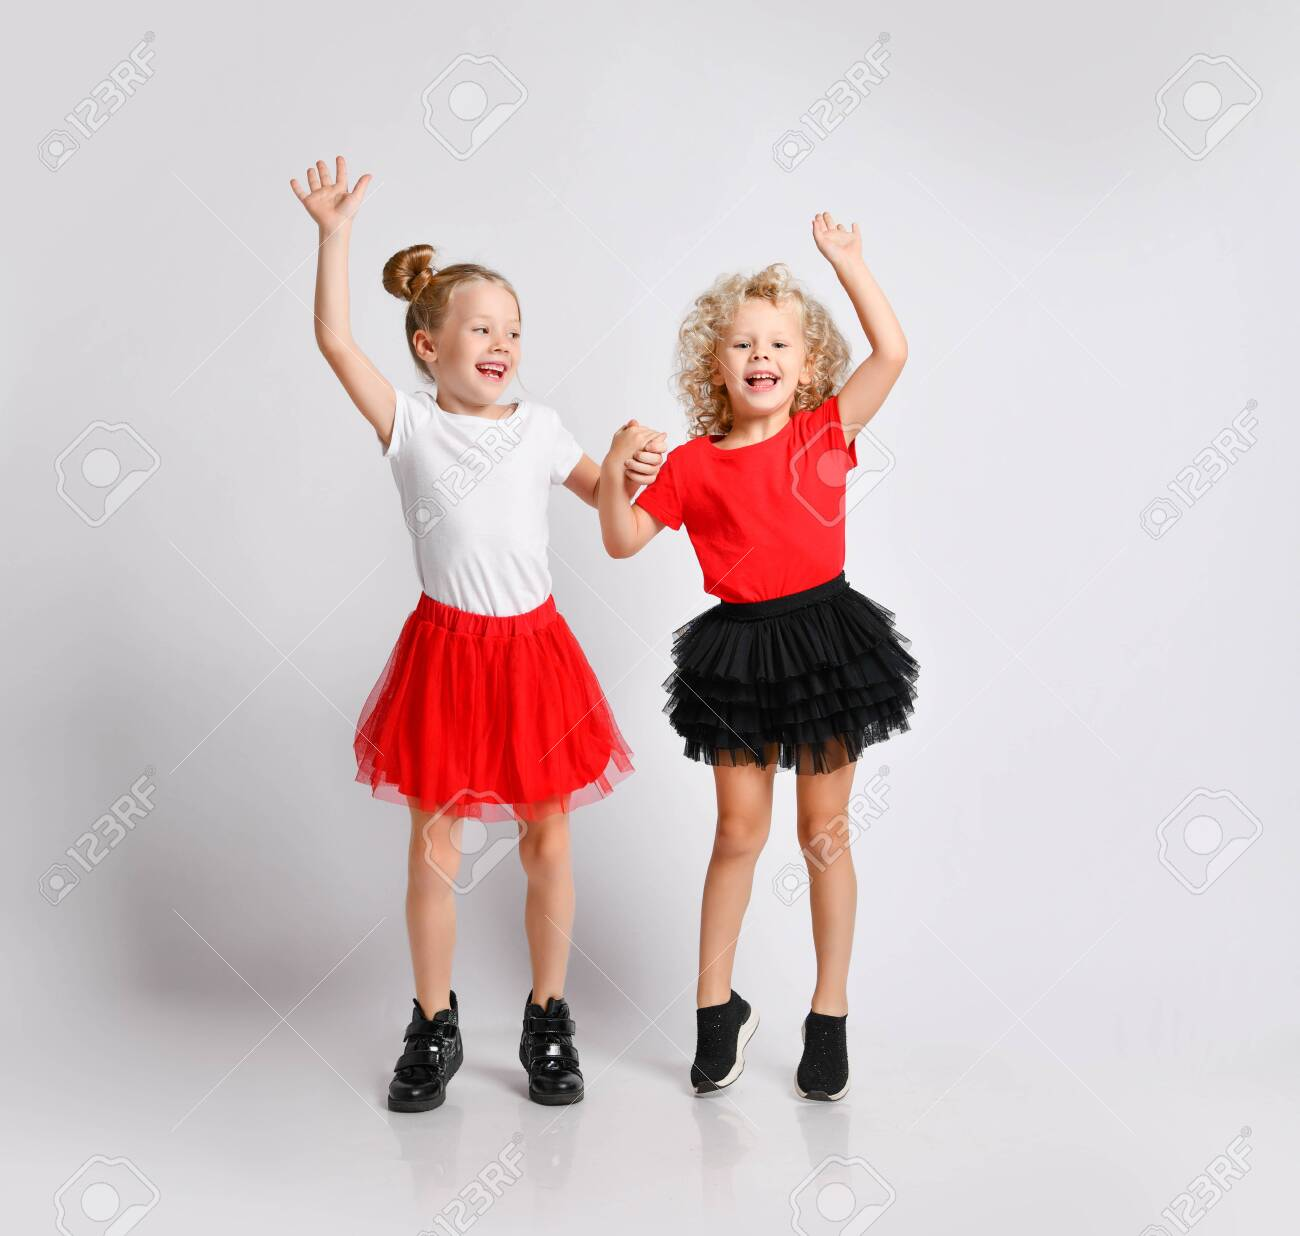 Active Happy Kids Girls Friends Sisters In Red And Black Skirts.. Stock  Photo, Picture And Royalty Free Image. Image 135409664.